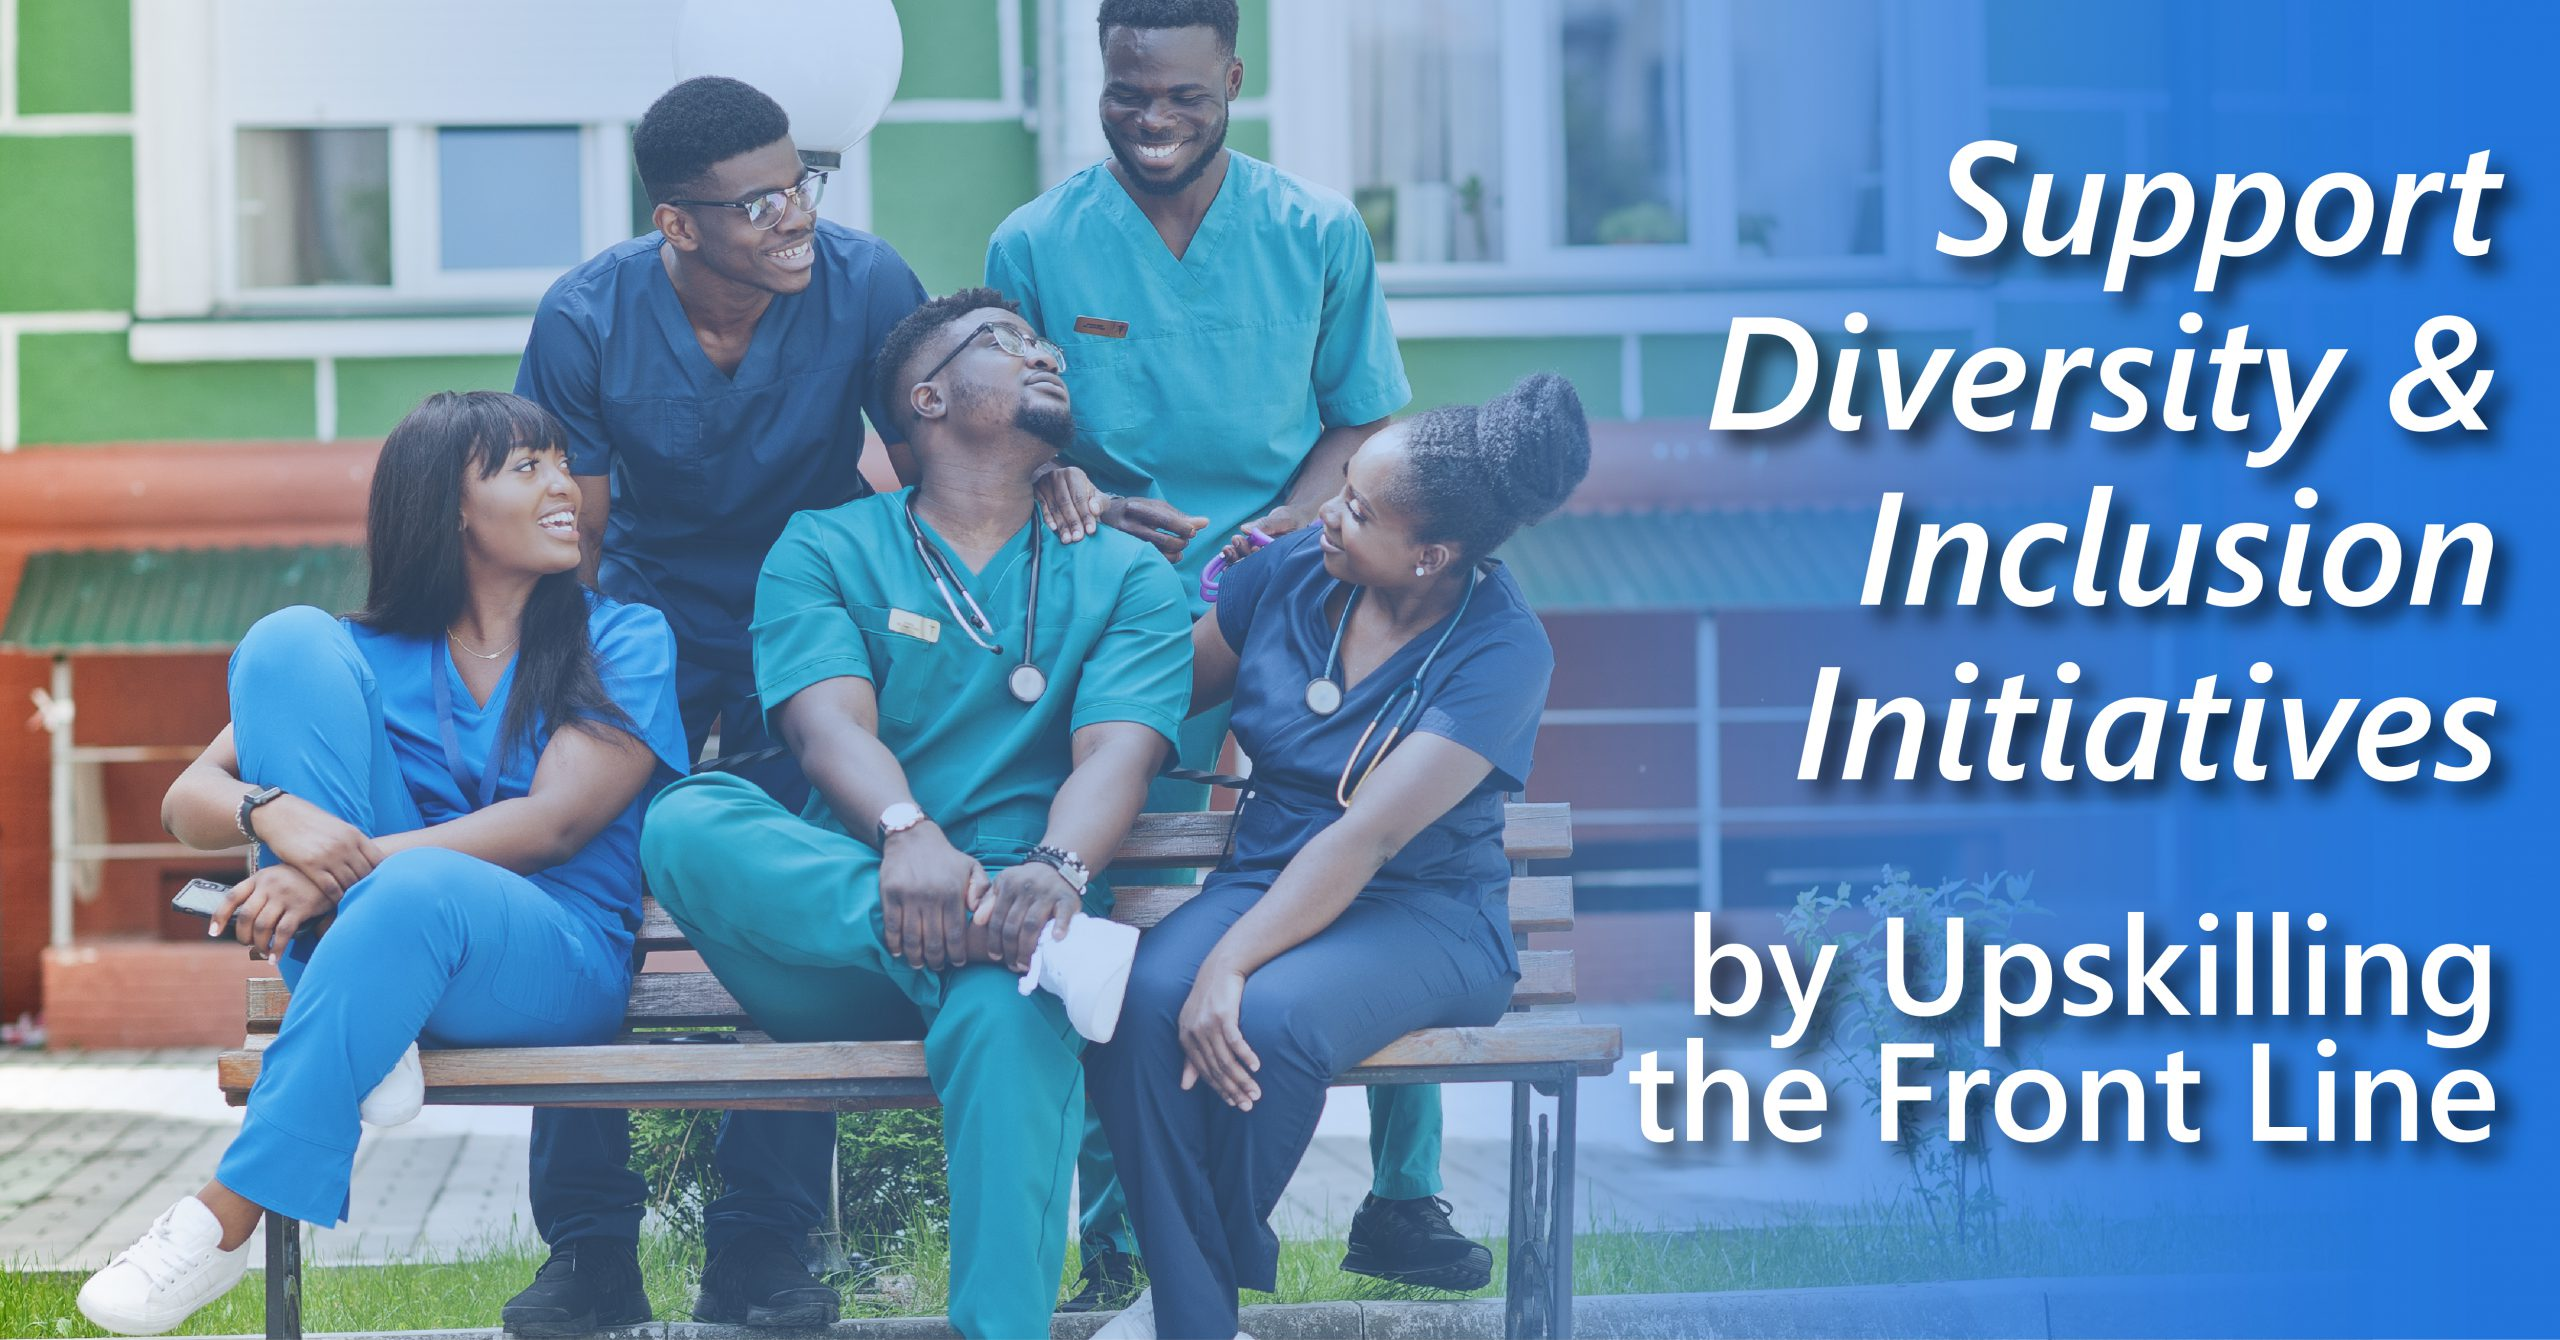 """A group of young Black healthcare workers sit and stand laughing and talking around a park bench. The article title is superimposed on the image """"Support Diversity and Inclusion Initiatives by Upskilling the Front Line"""